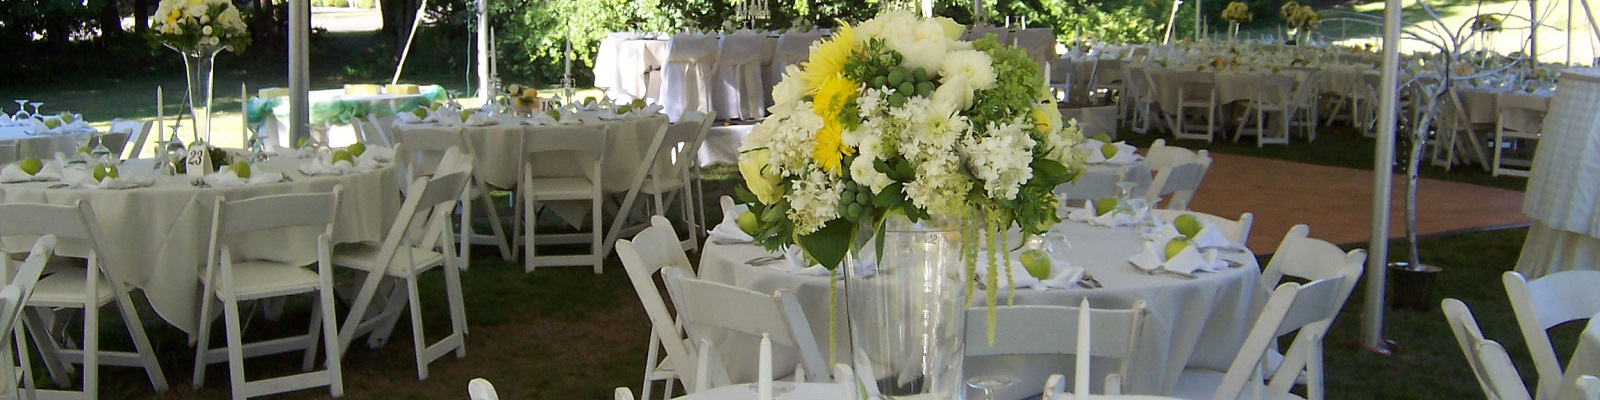 Wedding rentals in Vancouver/Portland, Clark County Washington and Hood River County Oregon